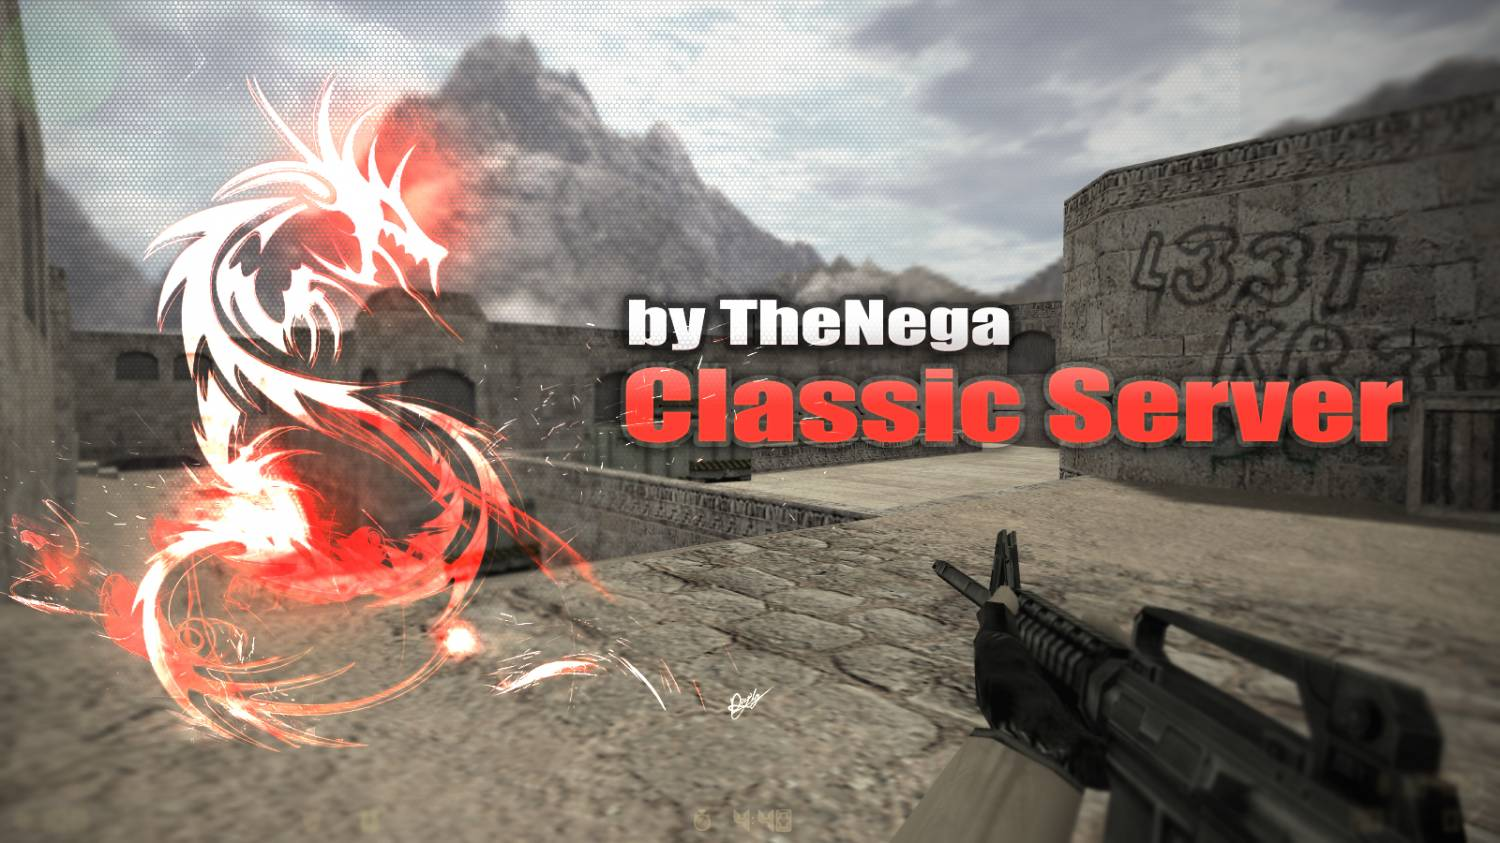 Classic Server by TheNega v1.0 [Windows / 6153 / 2015]